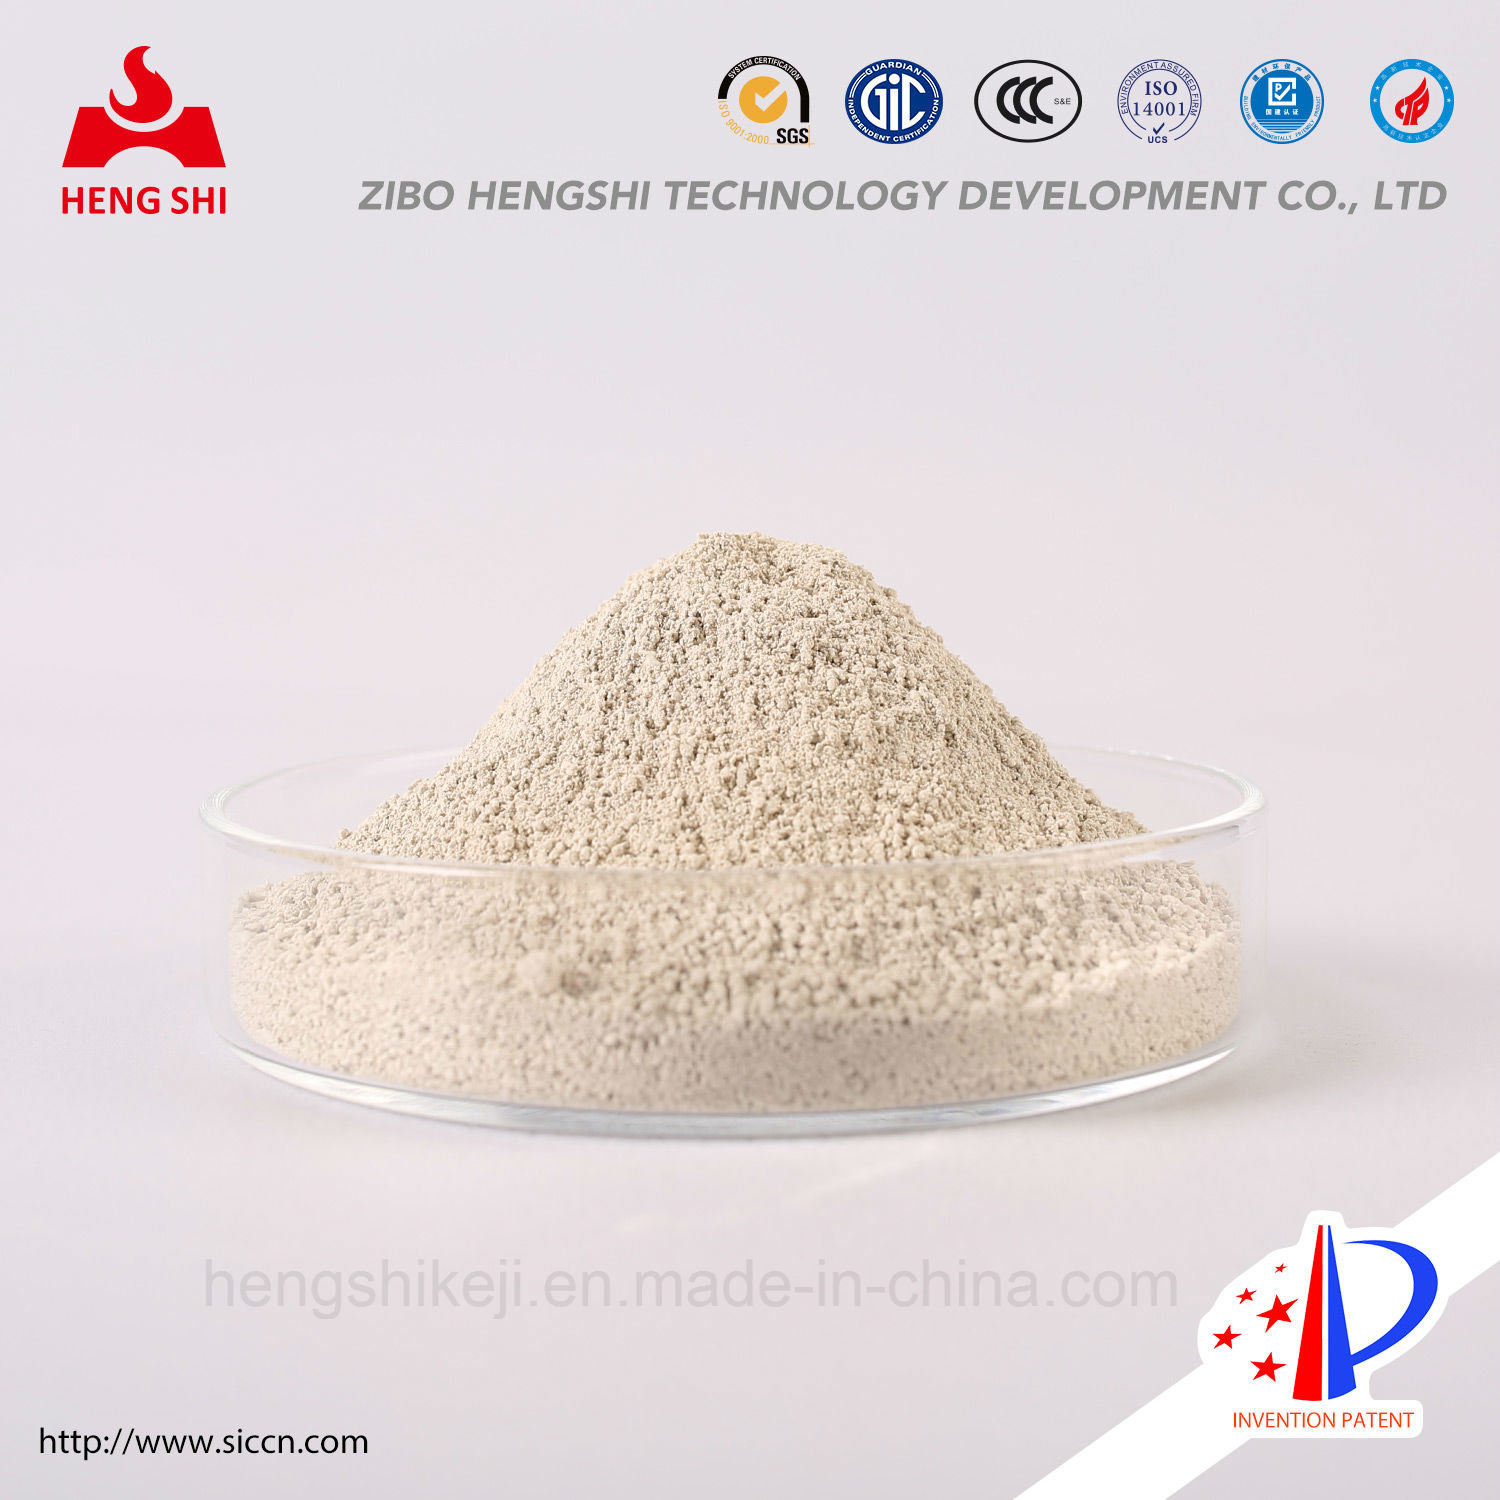 6300-6400 Meshes Silicon Nitride Powder